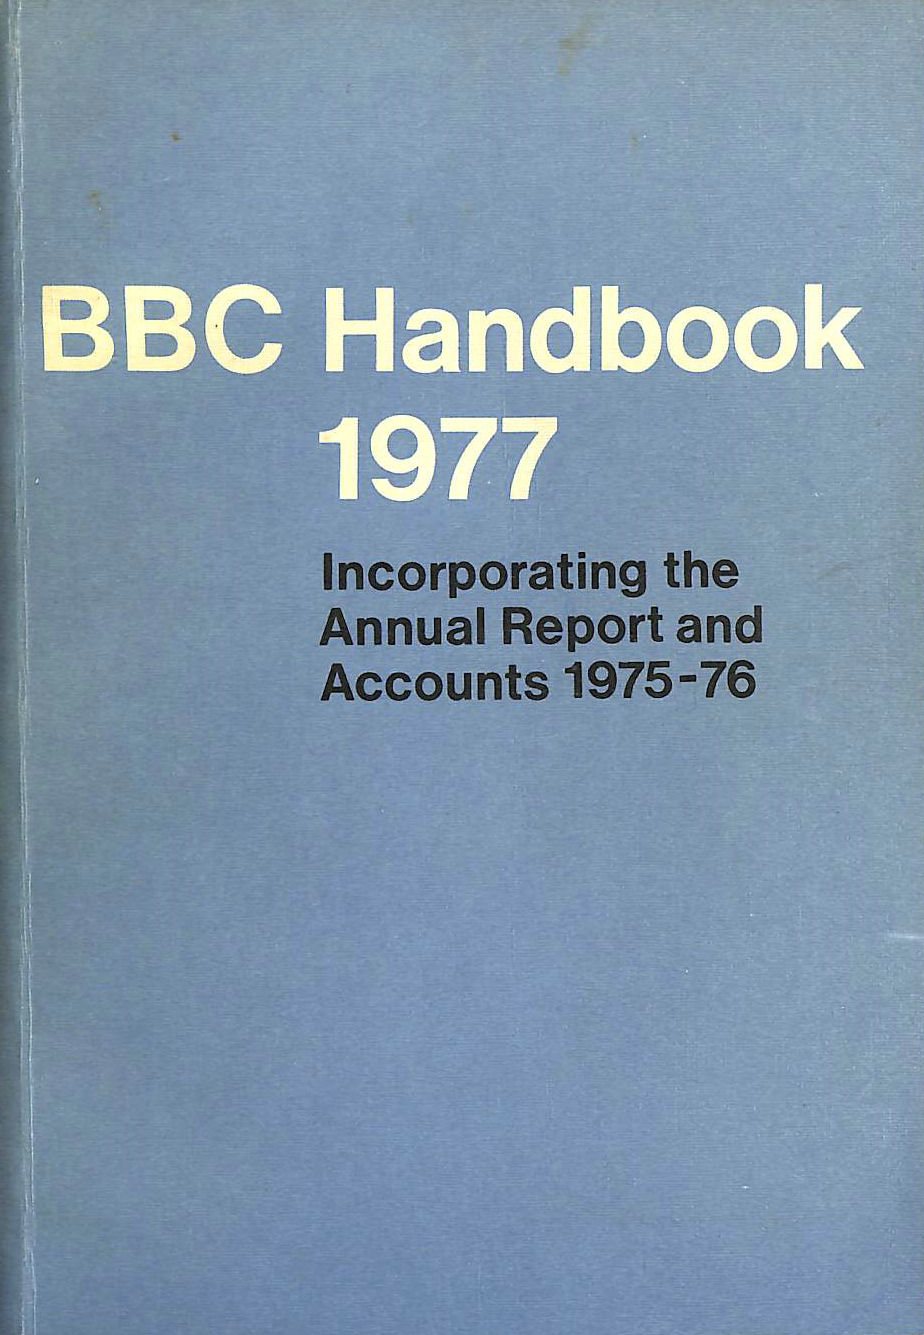 Image for BBC Handbook 1977 : incorporating the Annual Report and Accounts 1975-76